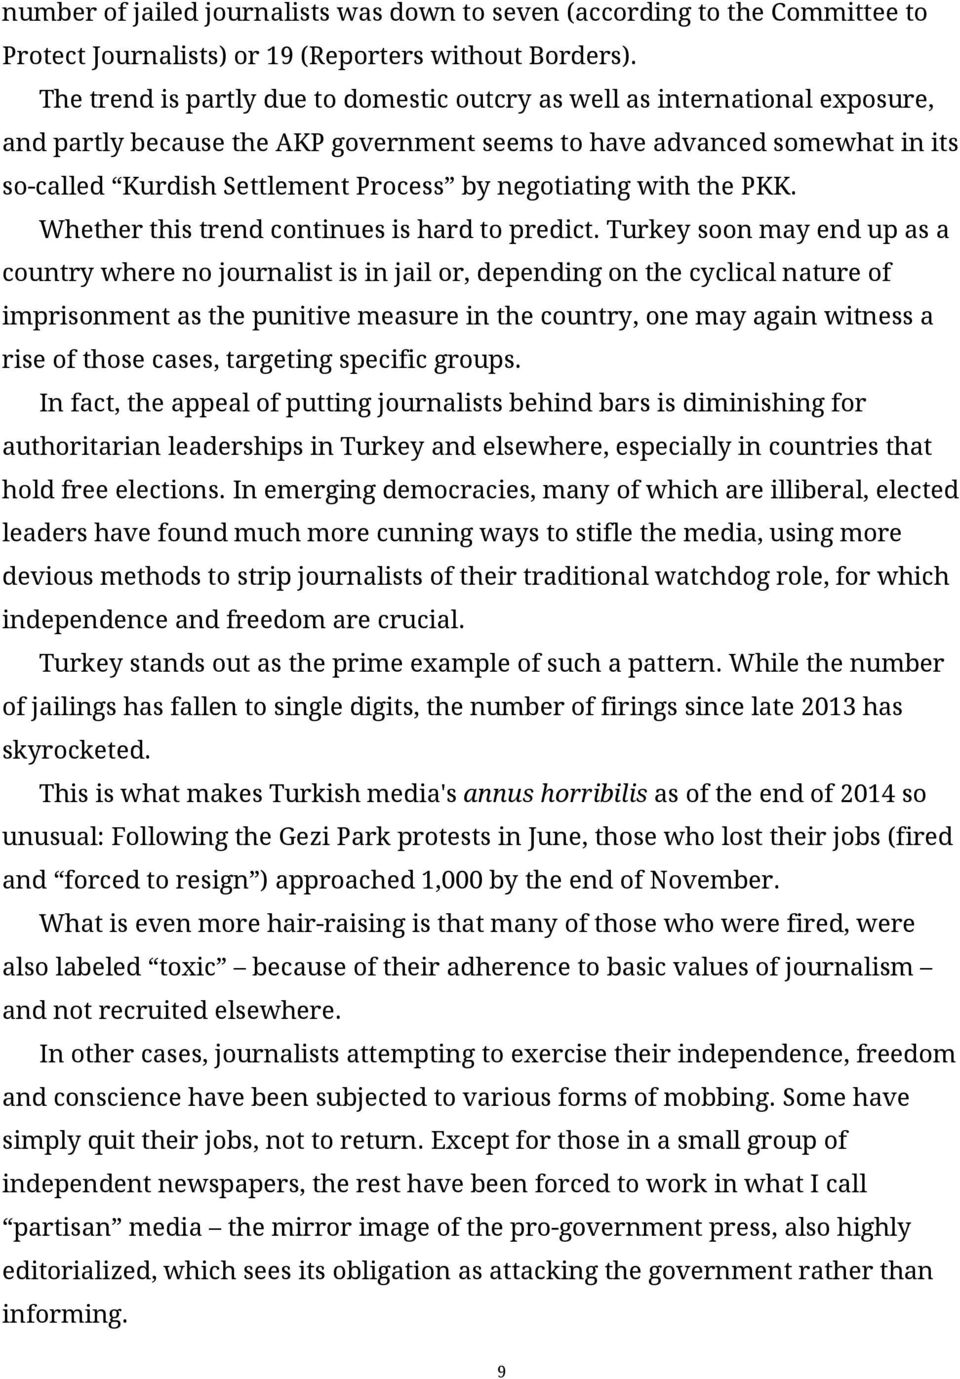 negotiating with the PKK. Whether this trend continues is hard to predict.